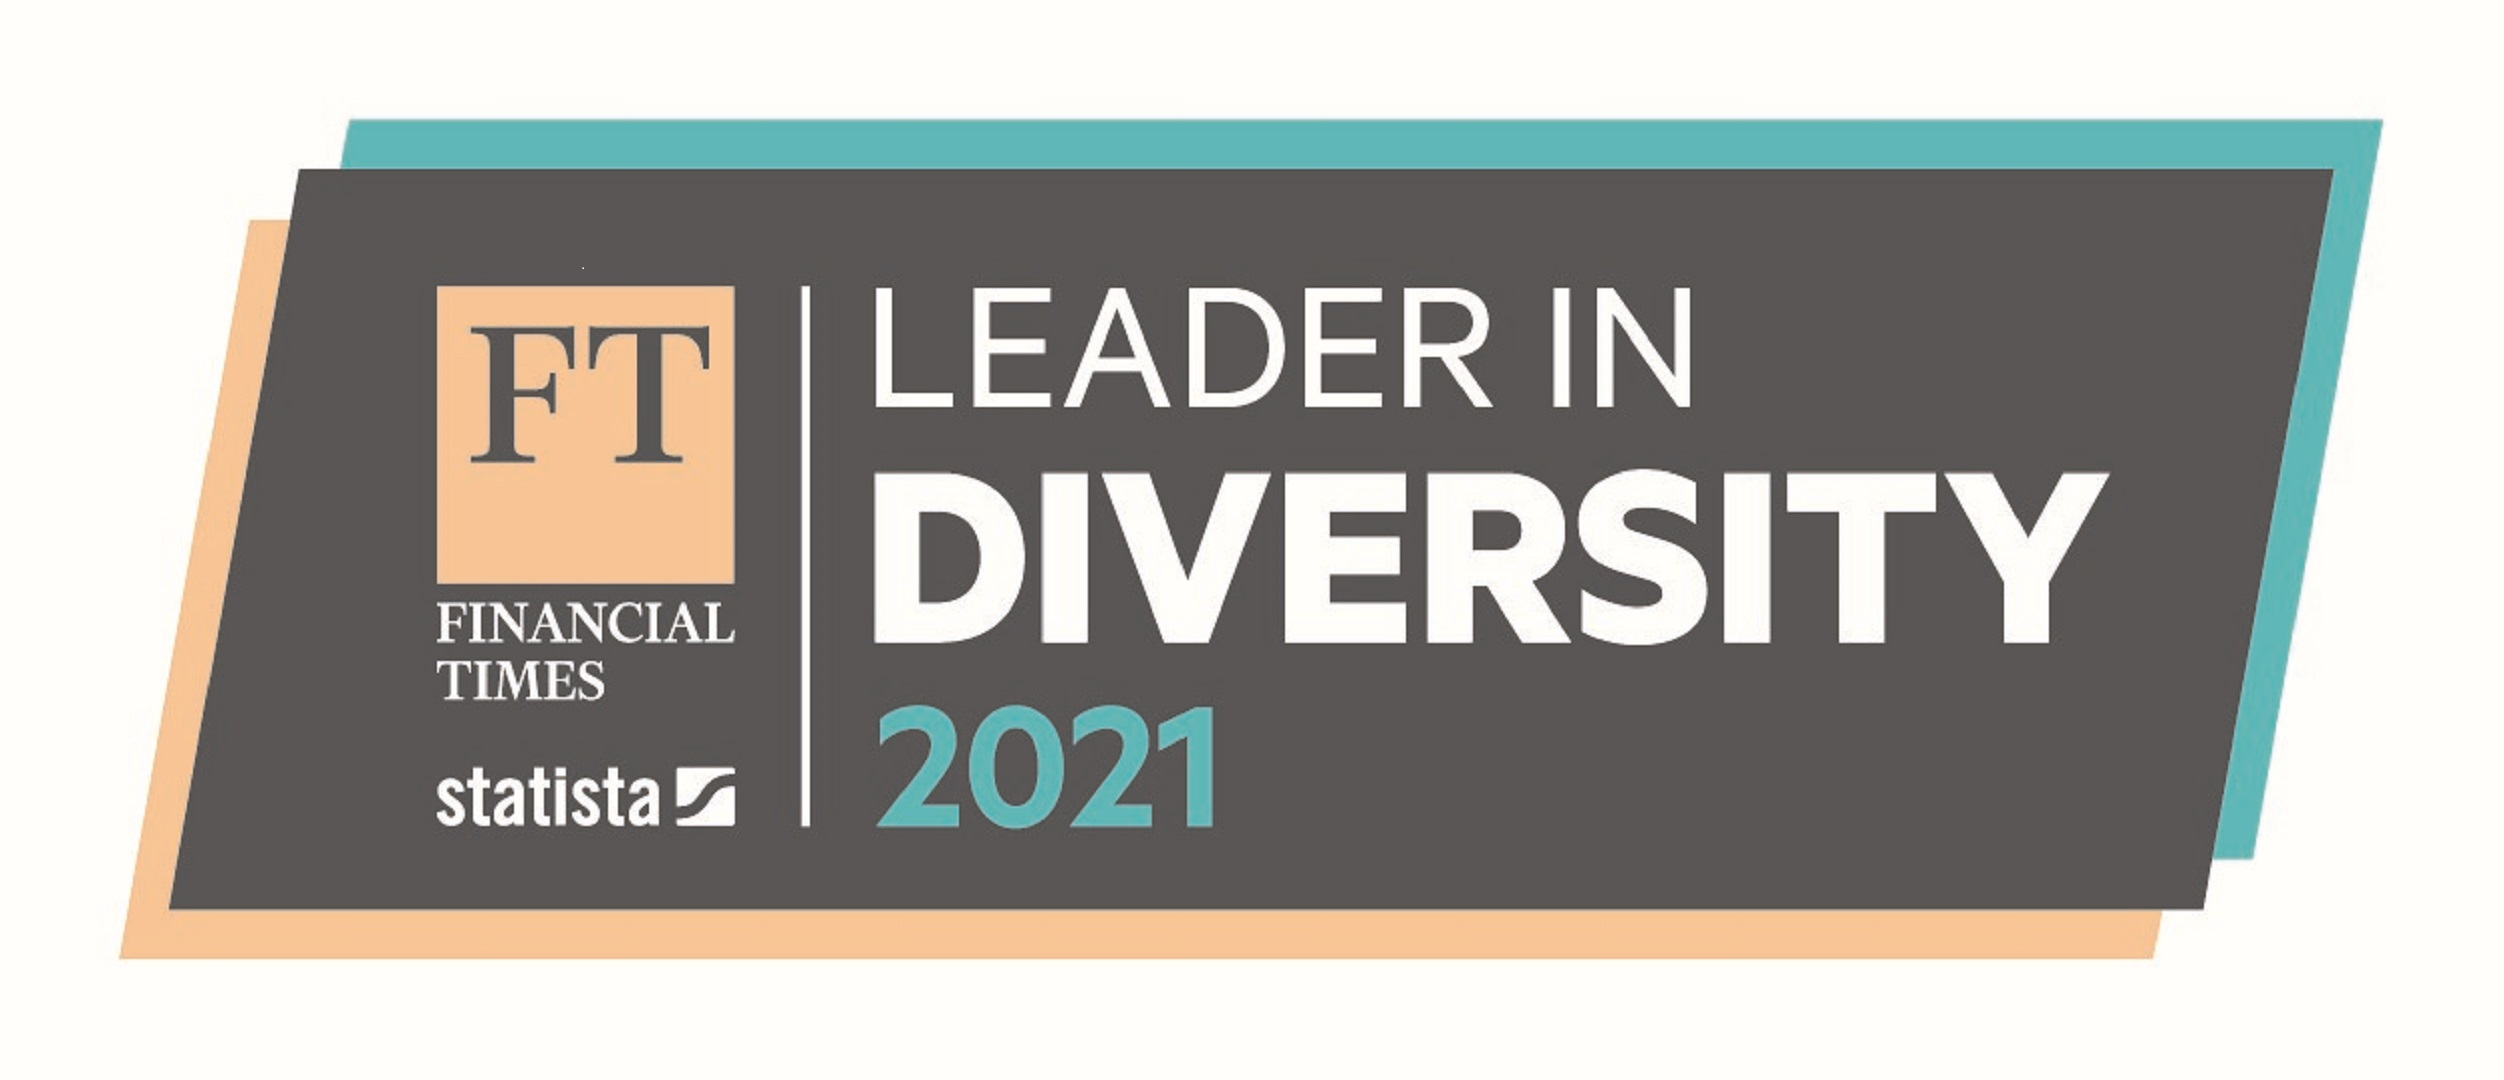 Engineering remains among the Financial Times Diversity Leader for 2021